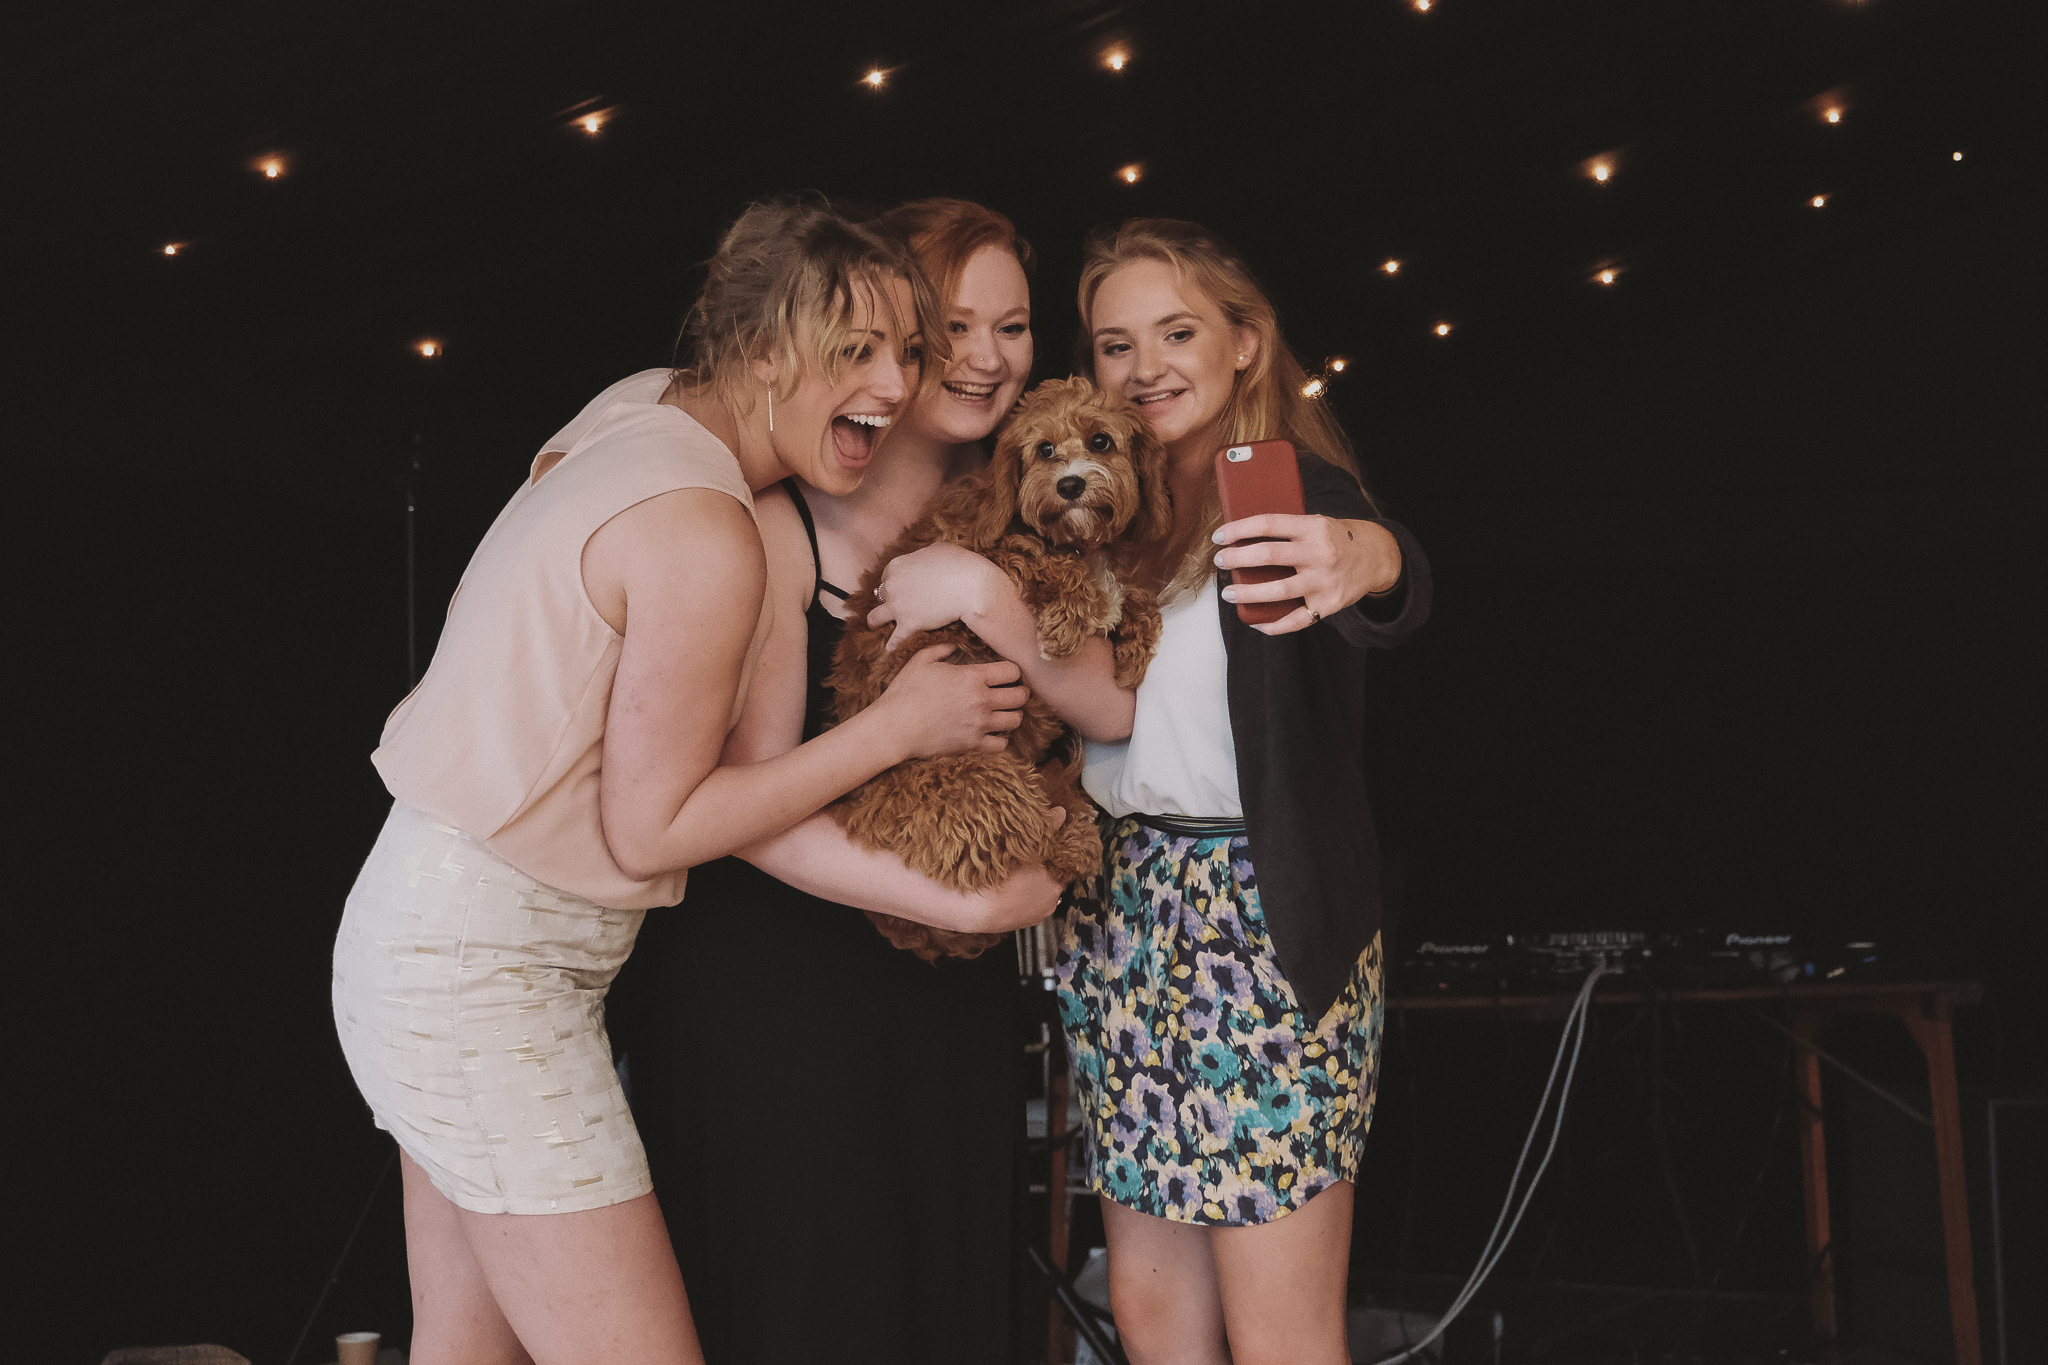 Wedding guests take a selfie including a small dog